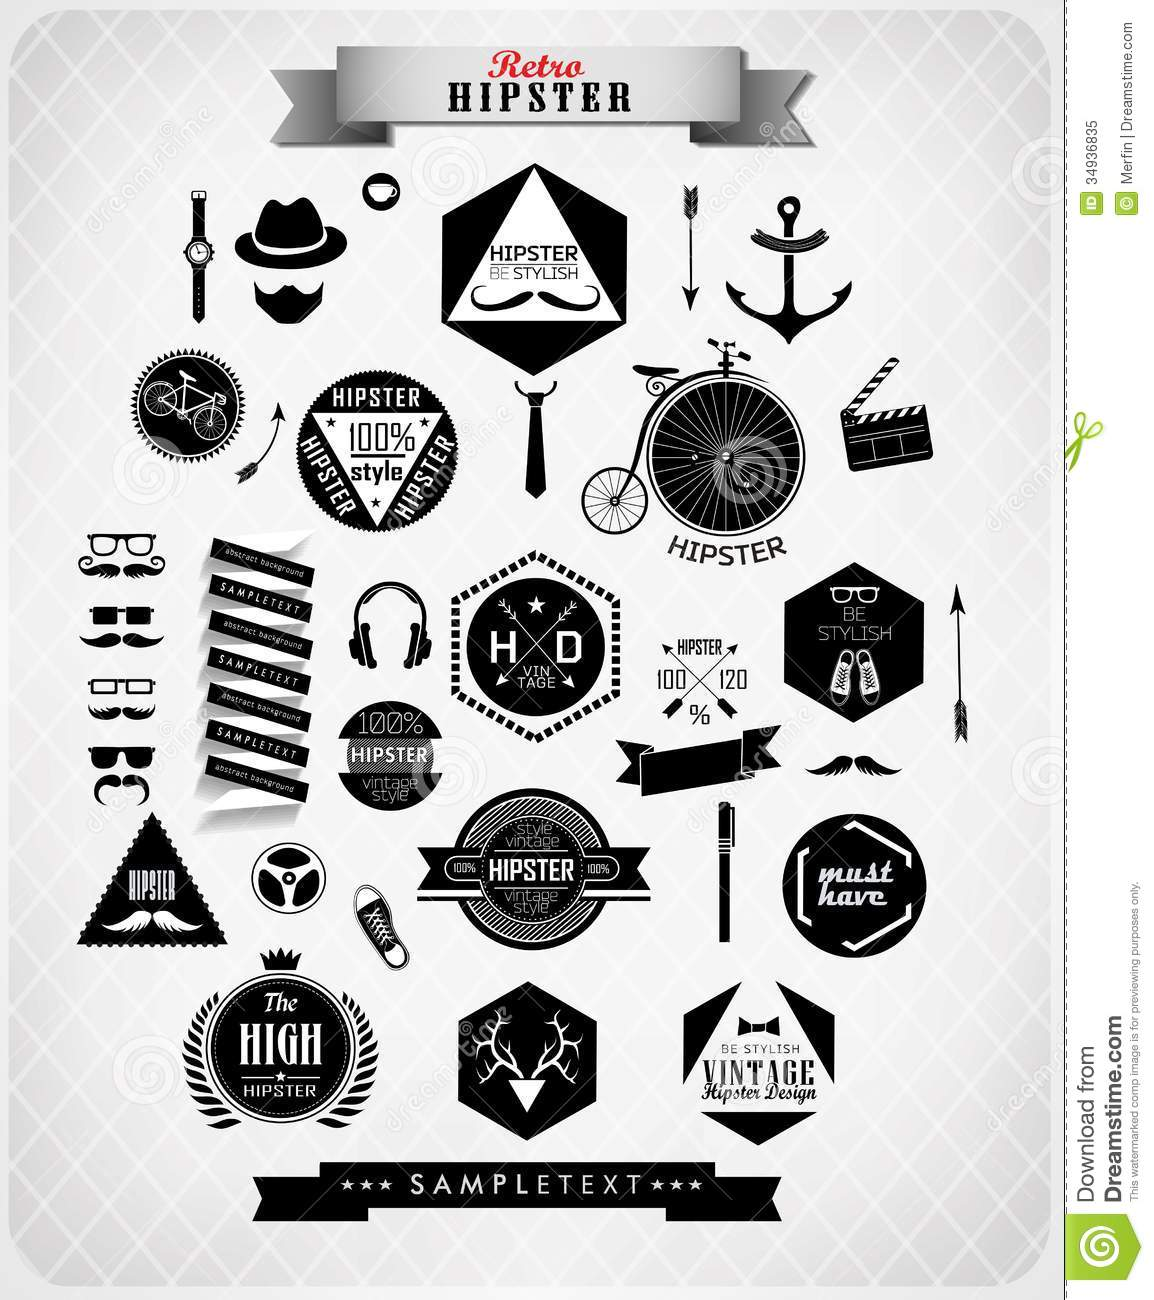 Hipster Style Elements And Icons Royalty Free Stock Photo Image 34936835